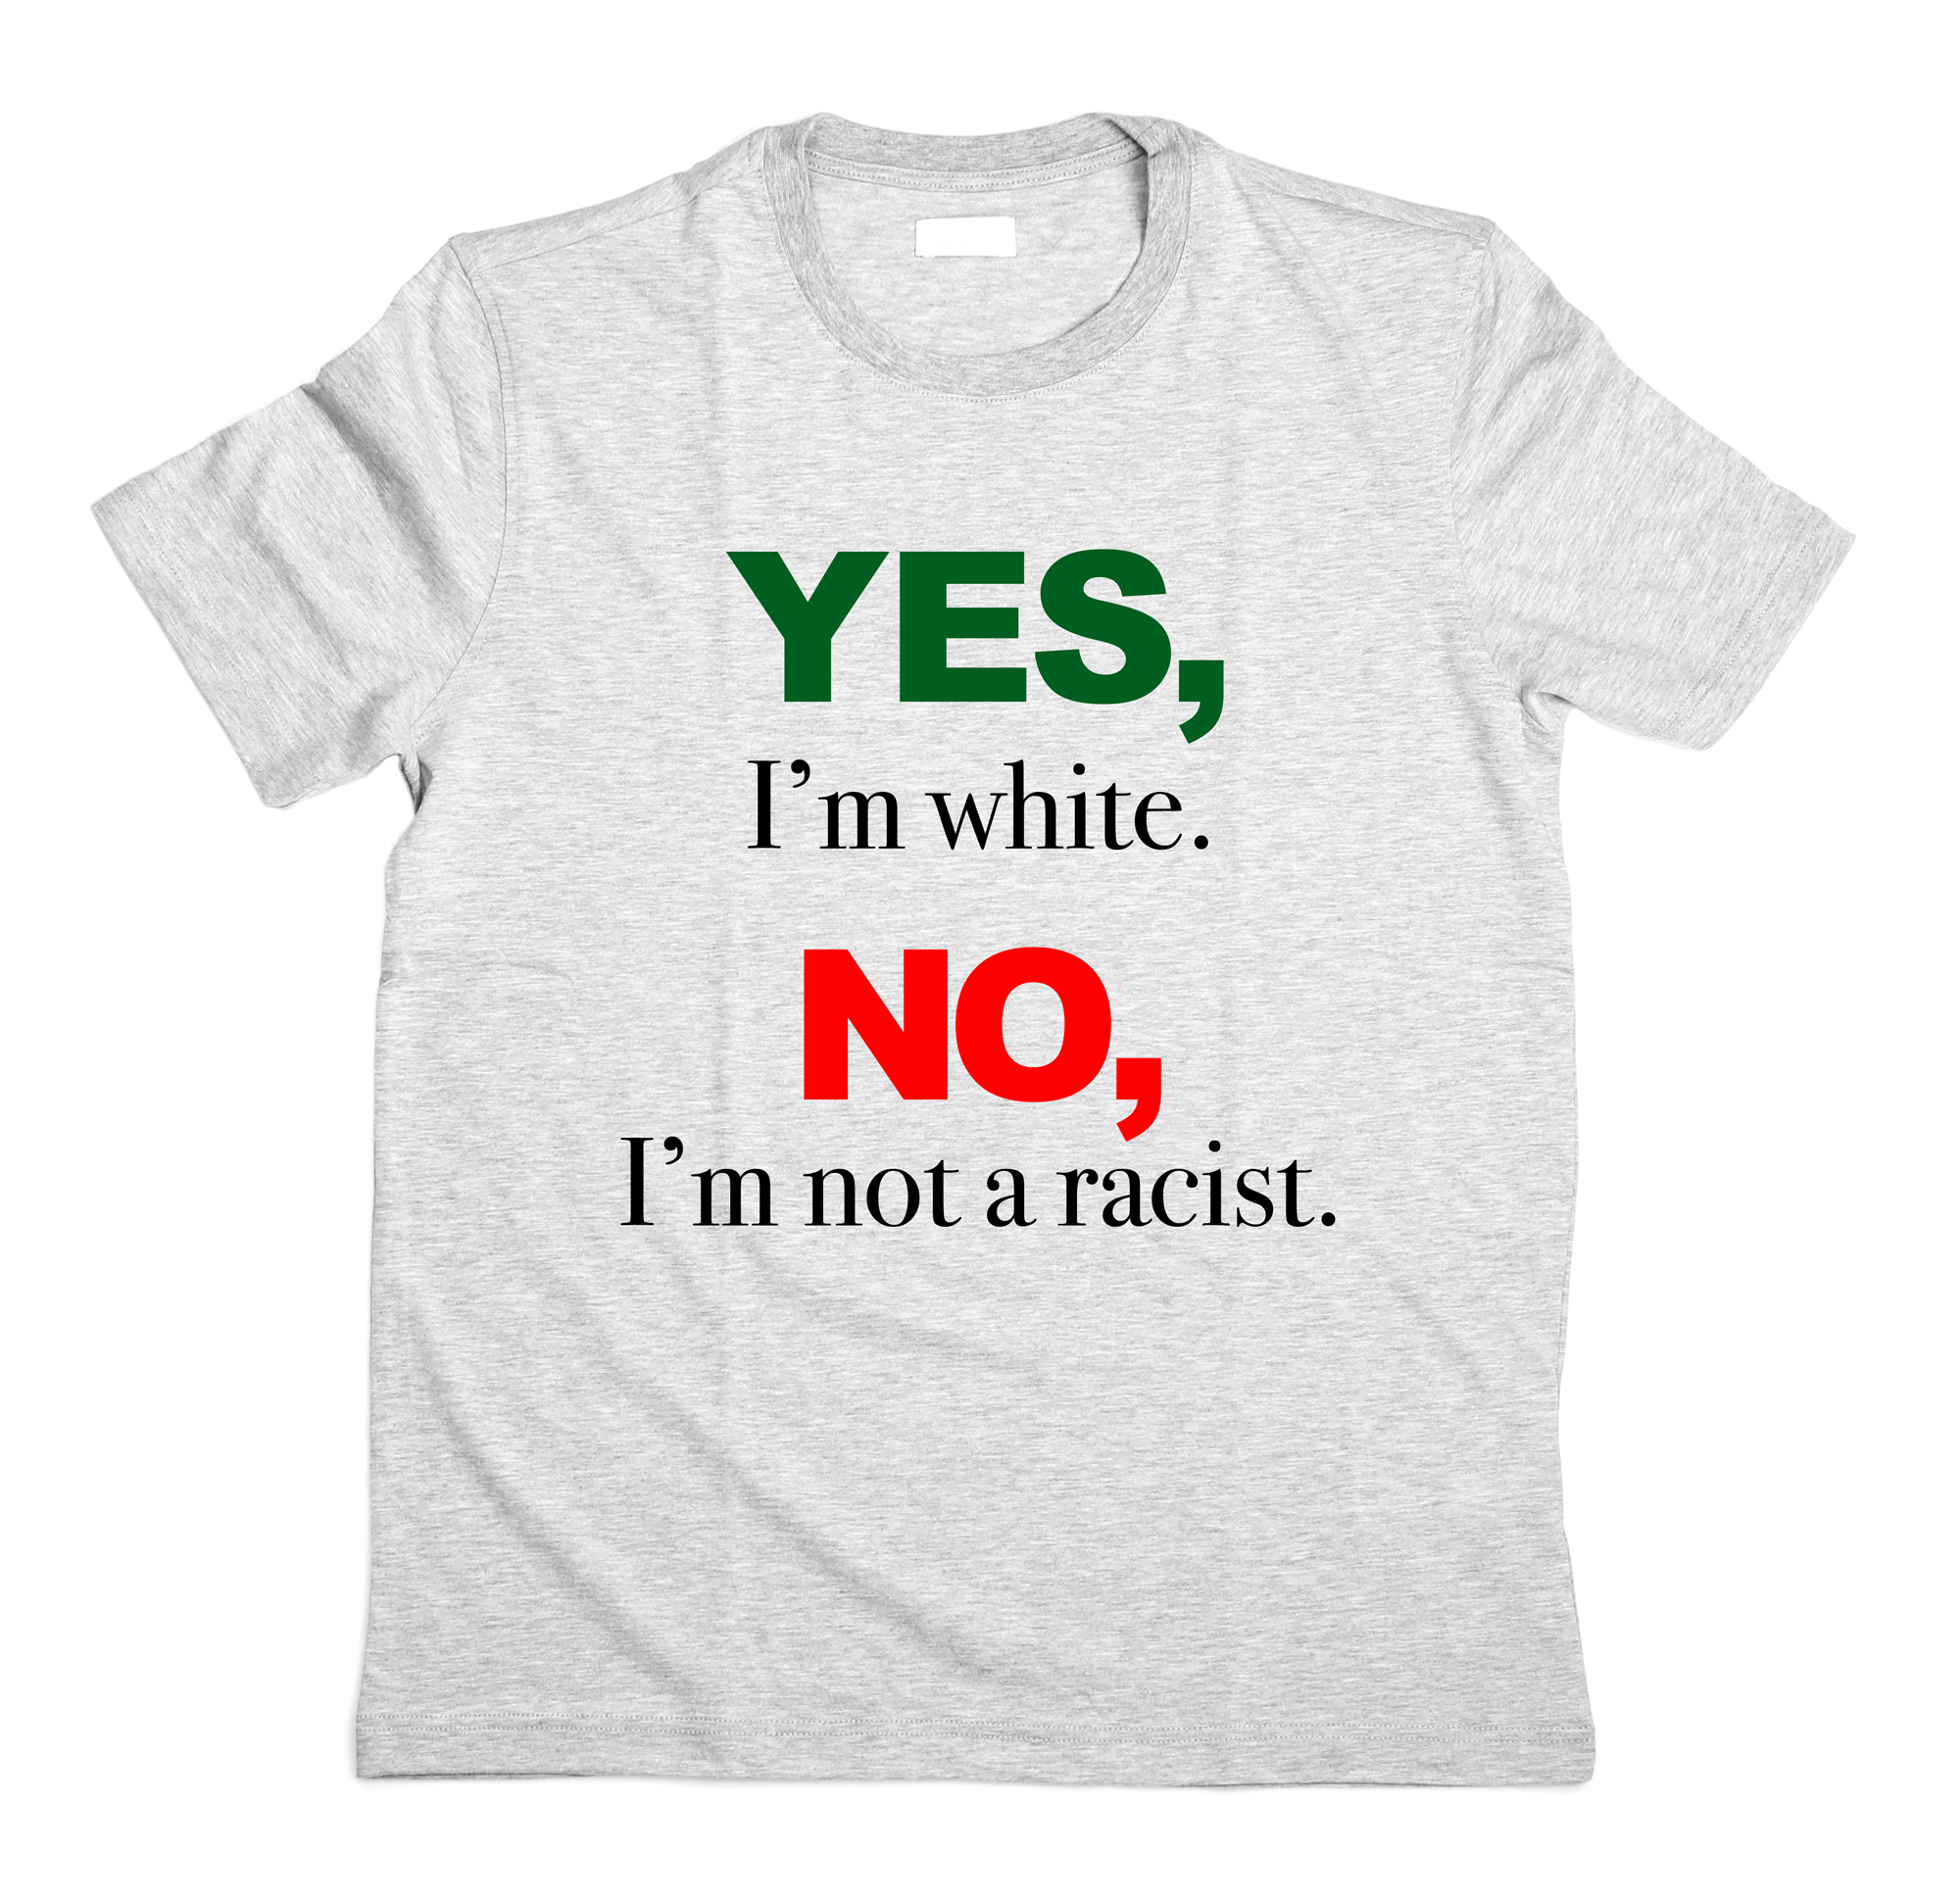 Yes, I'm White. Conservative T-Shirt (MADE IN THE USA)